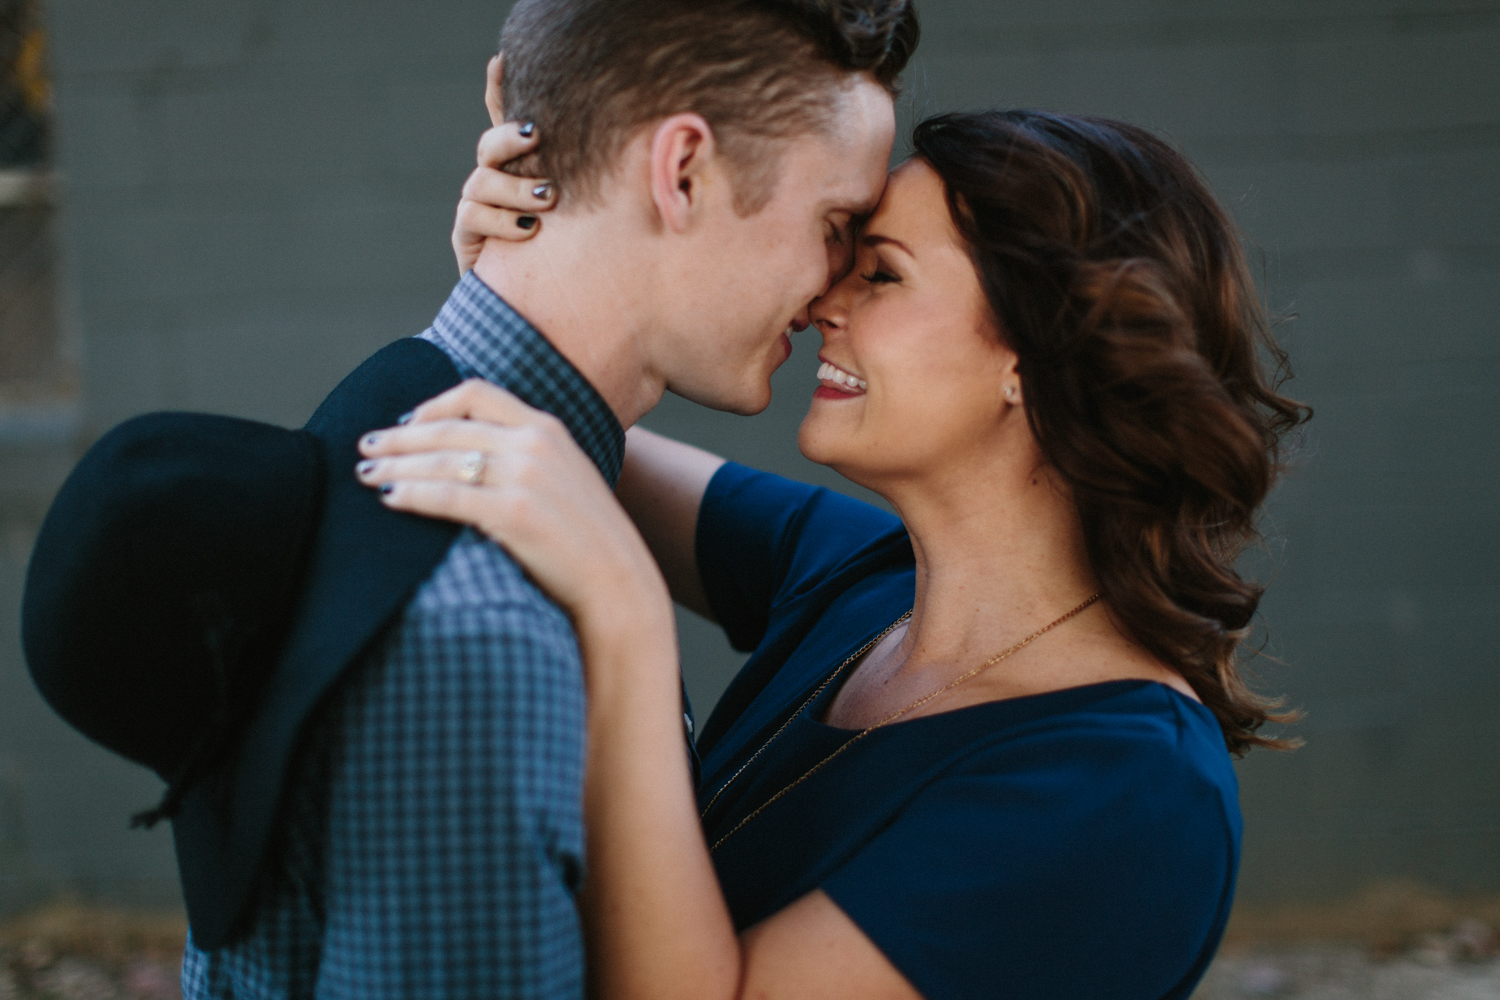 SiouxFalls_DesMoines_Wedding_Engagement_Photographer_11.jpg